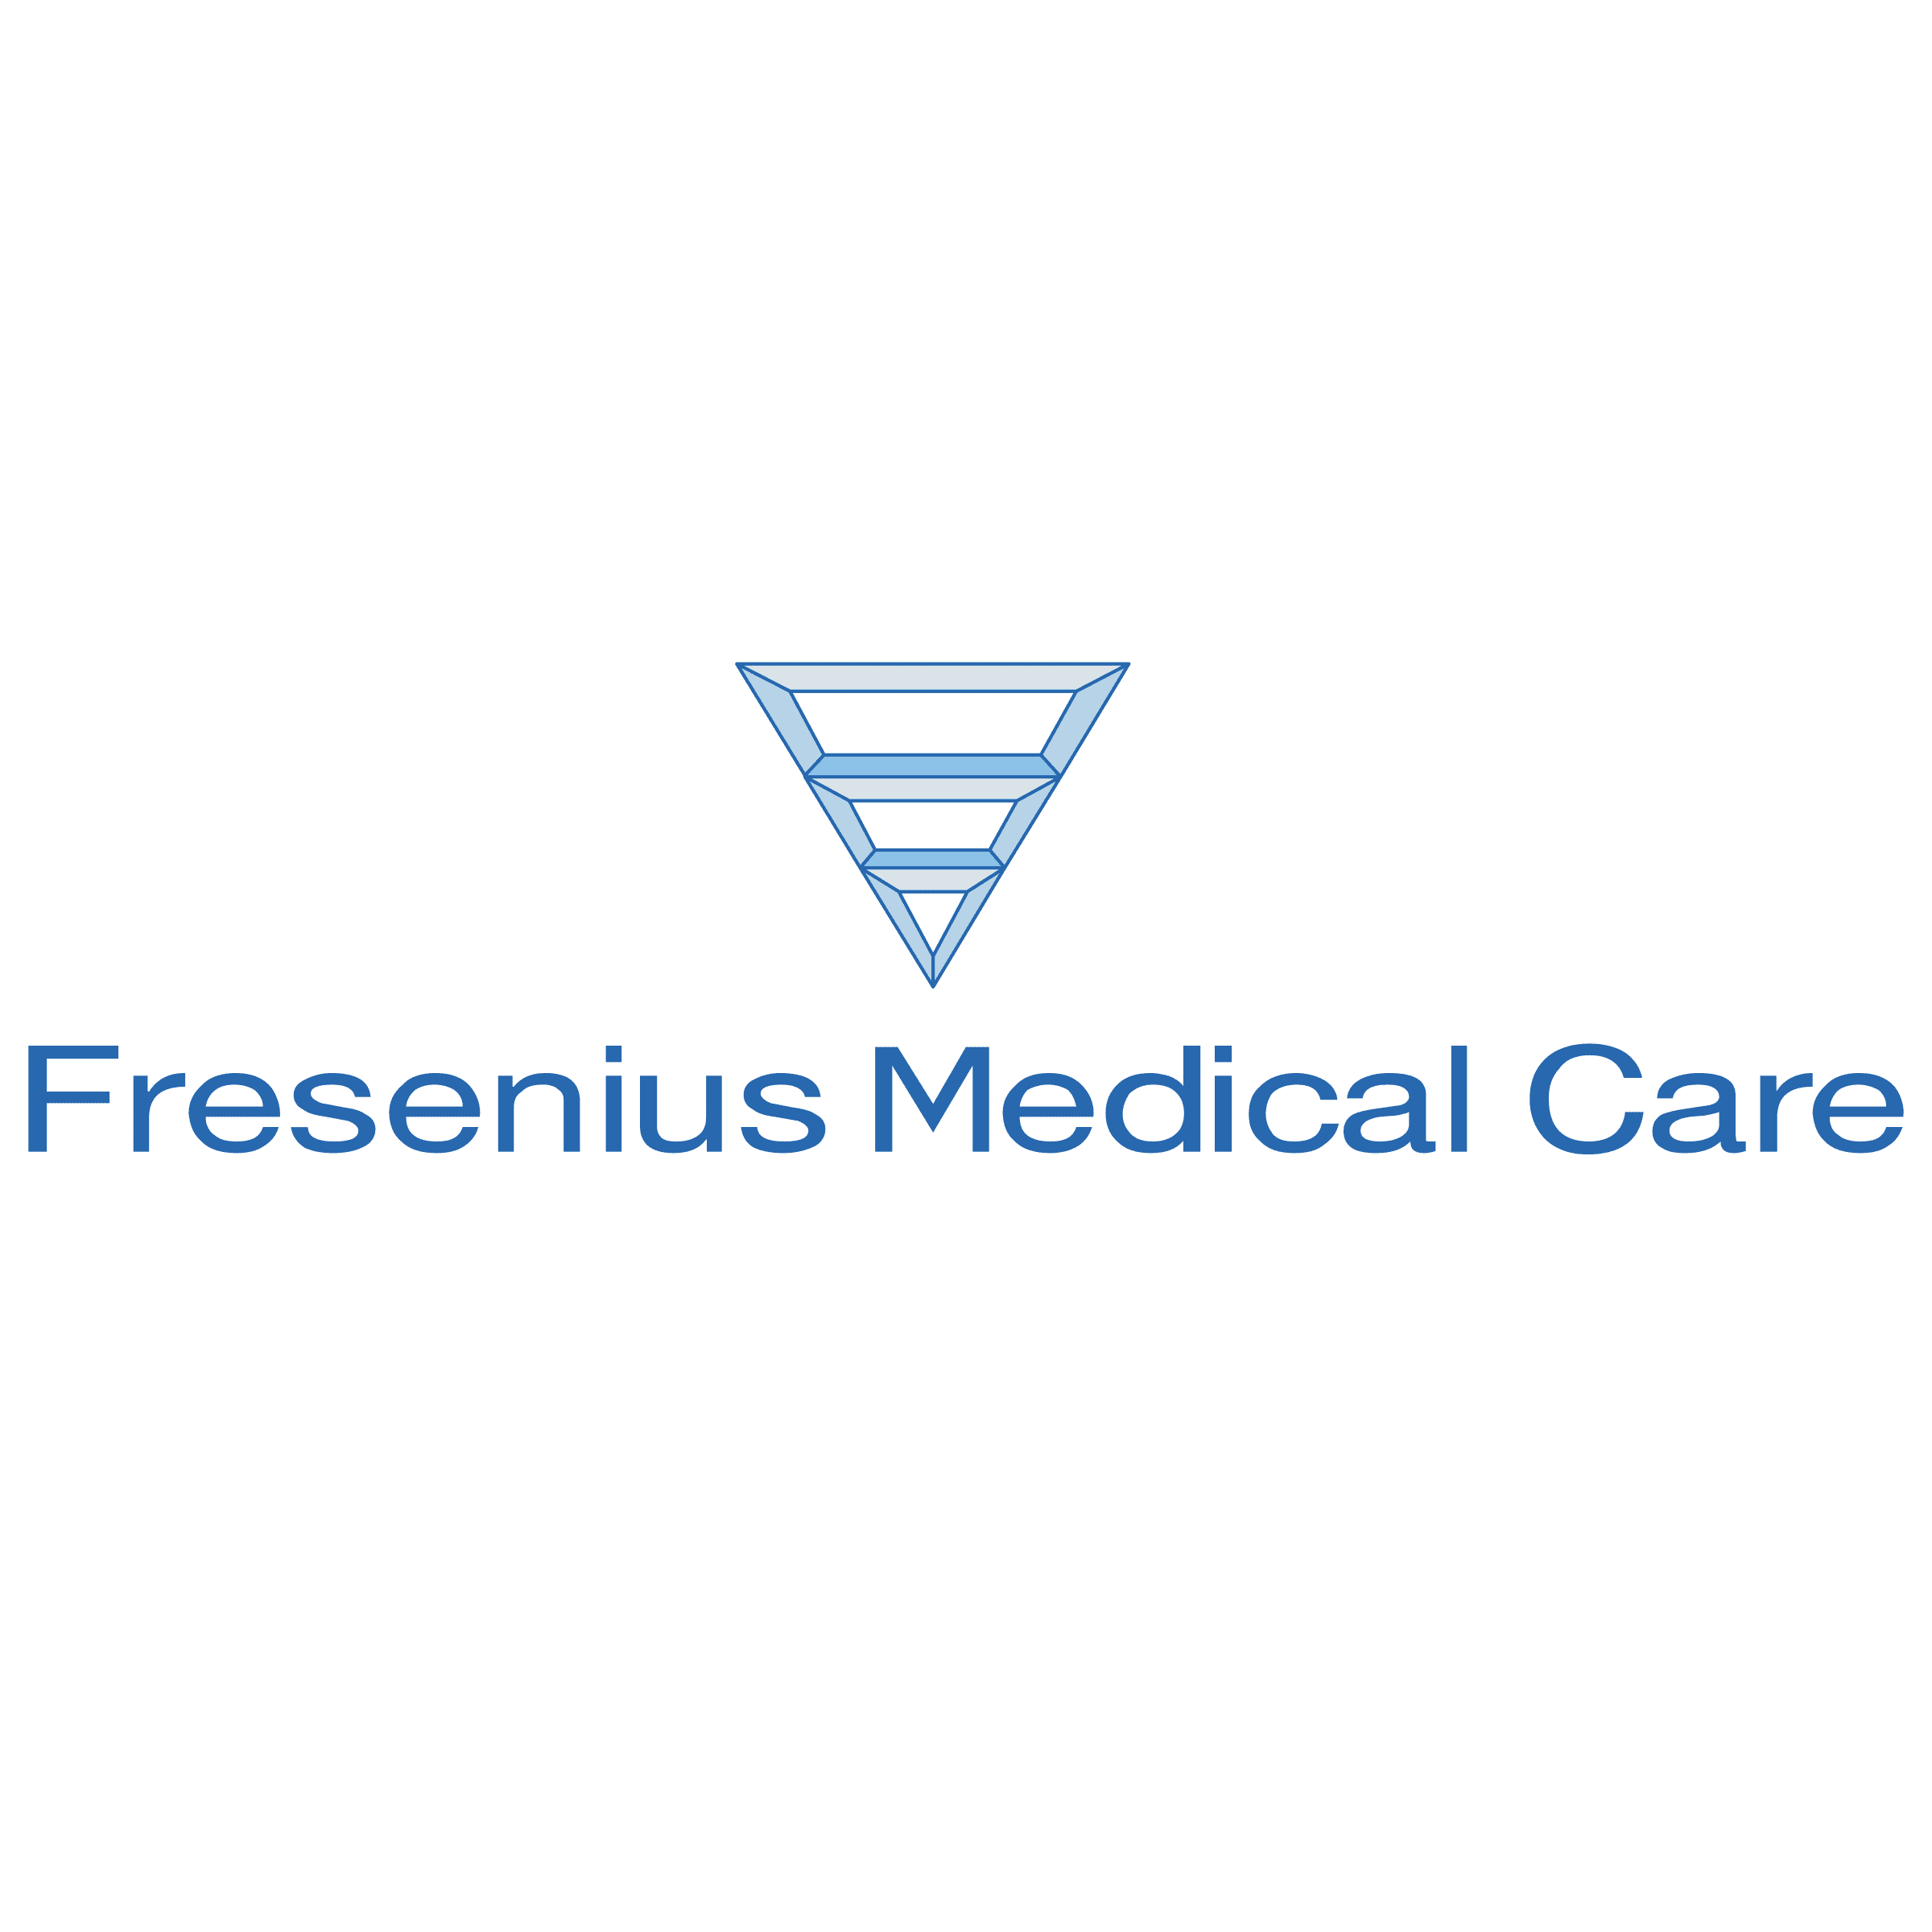 fresenius-medical-care-logo-png-transparent